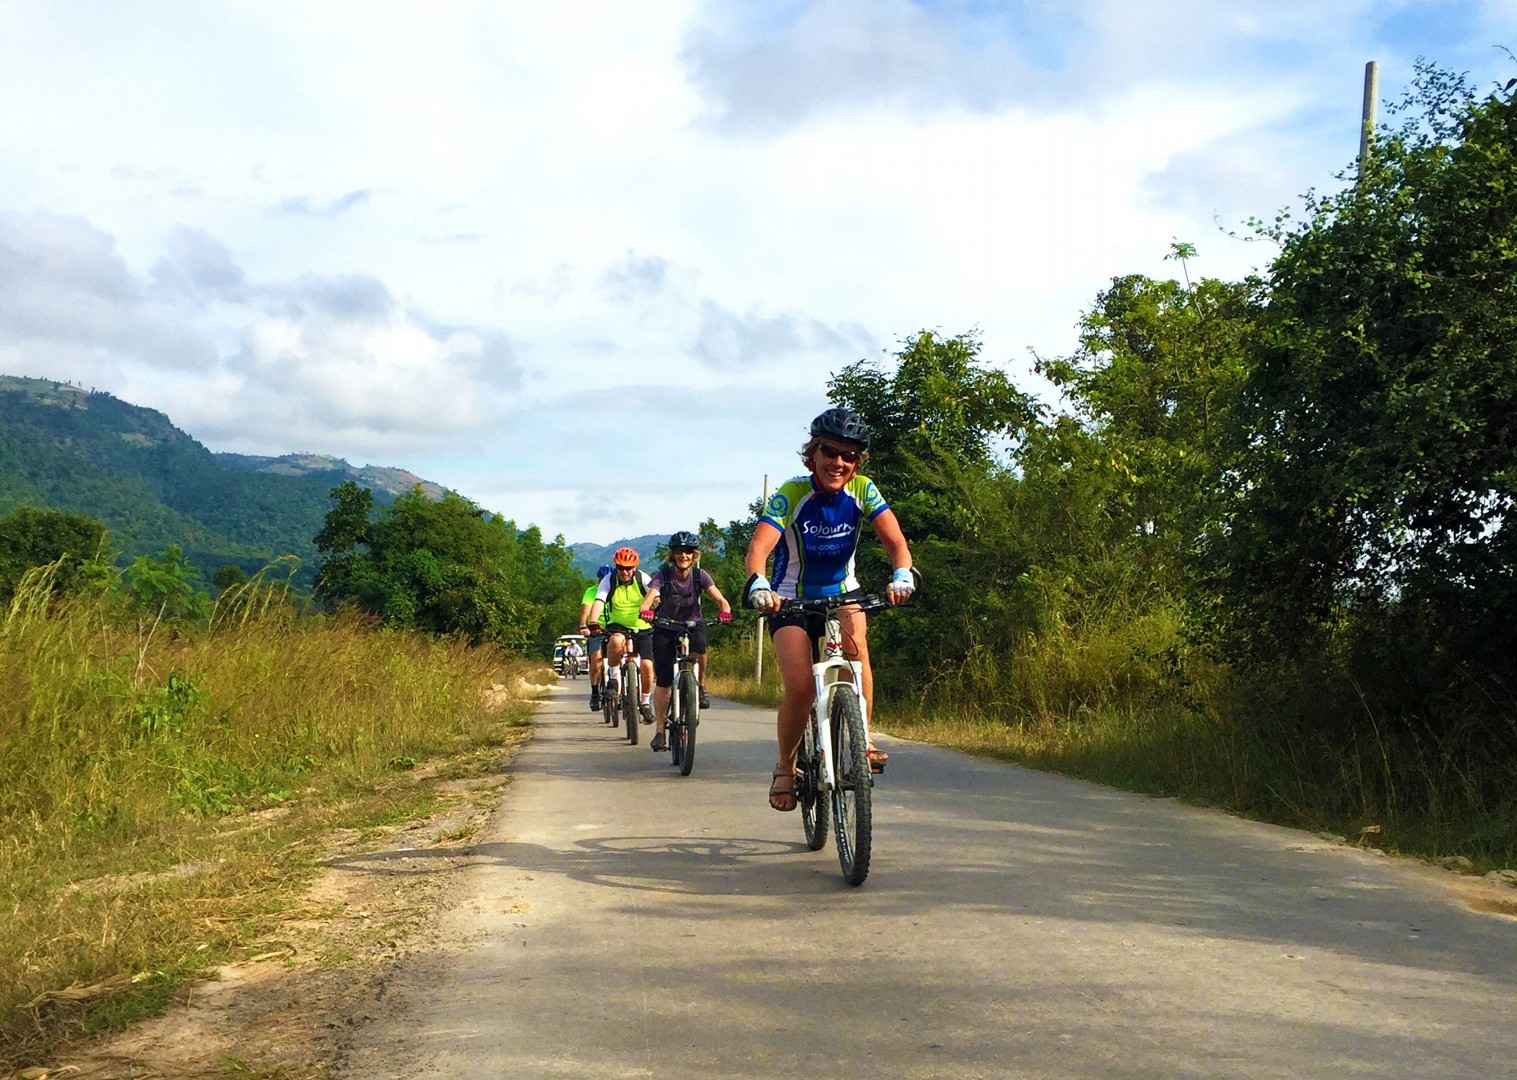 group-cycling-adventure-countryside-burma.jpg - Myanmar (Burma) - Bagan and Beyond - Cycling Adventures